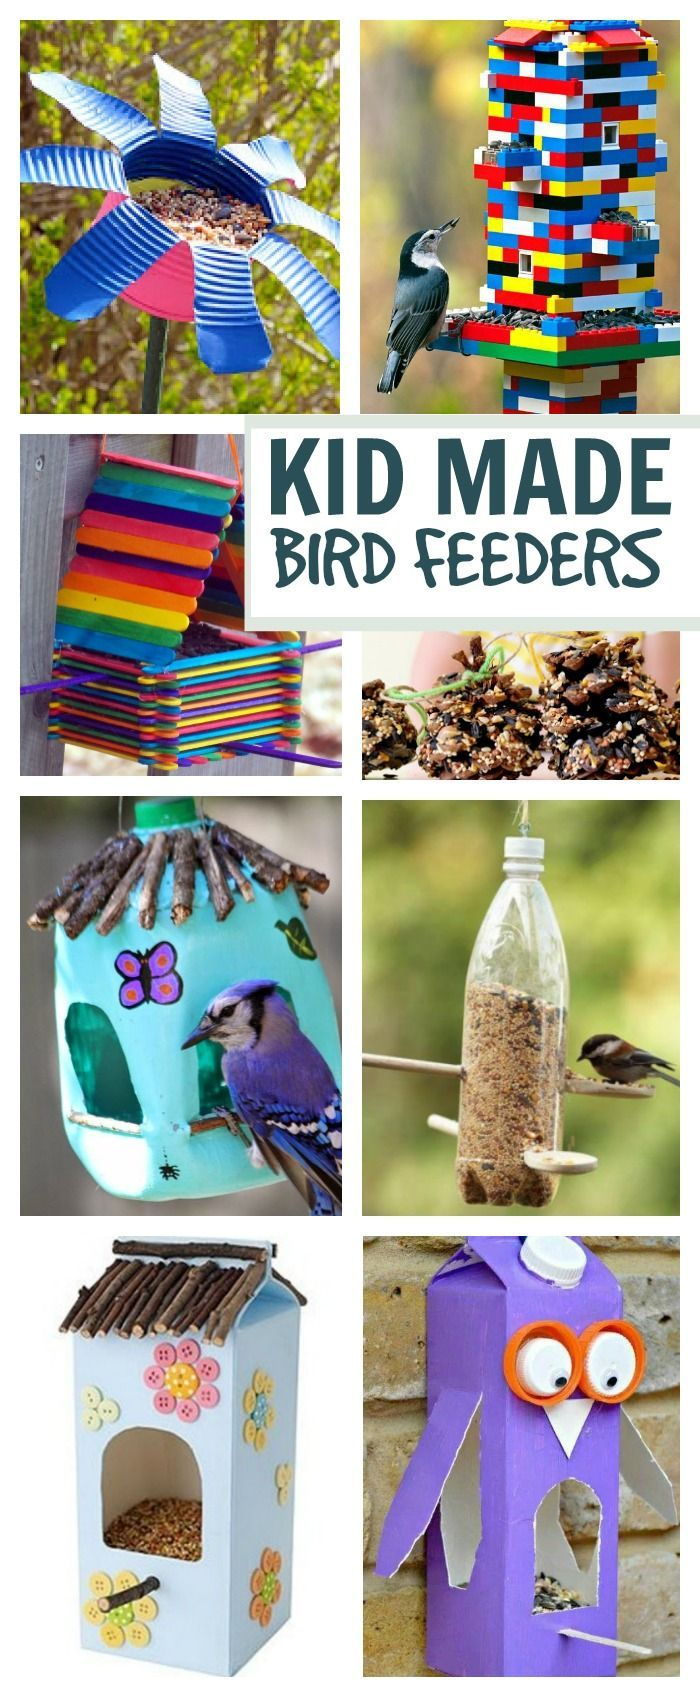 18 TOTALLY AWESOME Bird Feeder Crafts For Kids These Are SO COOL I Love